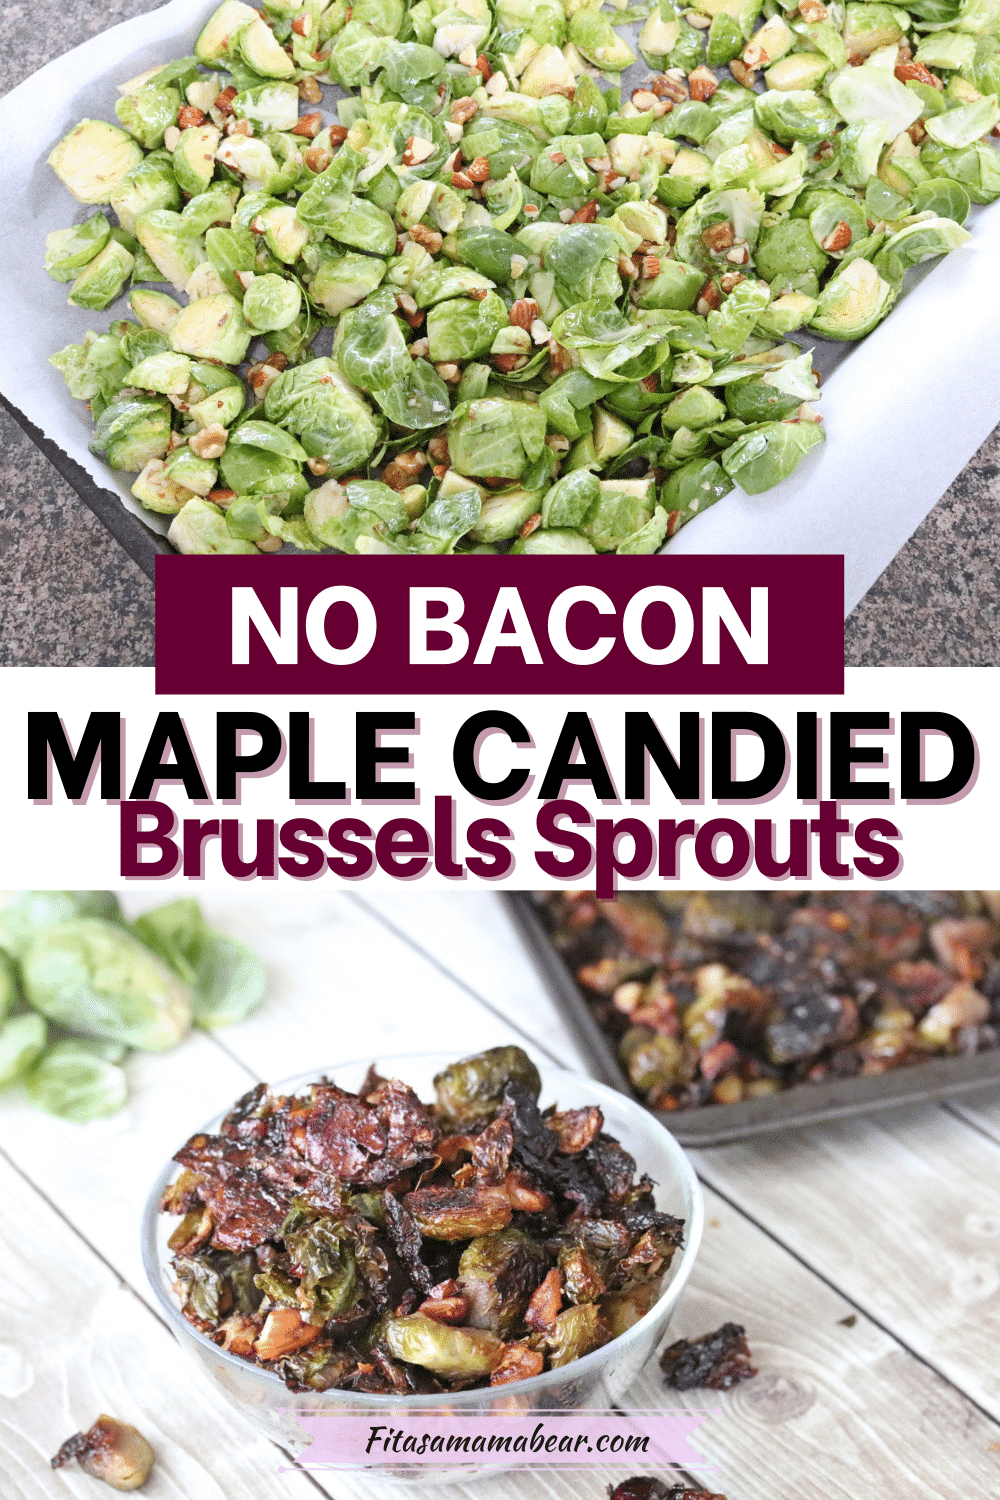 Pin image with text: two images of brussels sprouts the top image raw on a baking tray and the bottom candied in a glass bowl